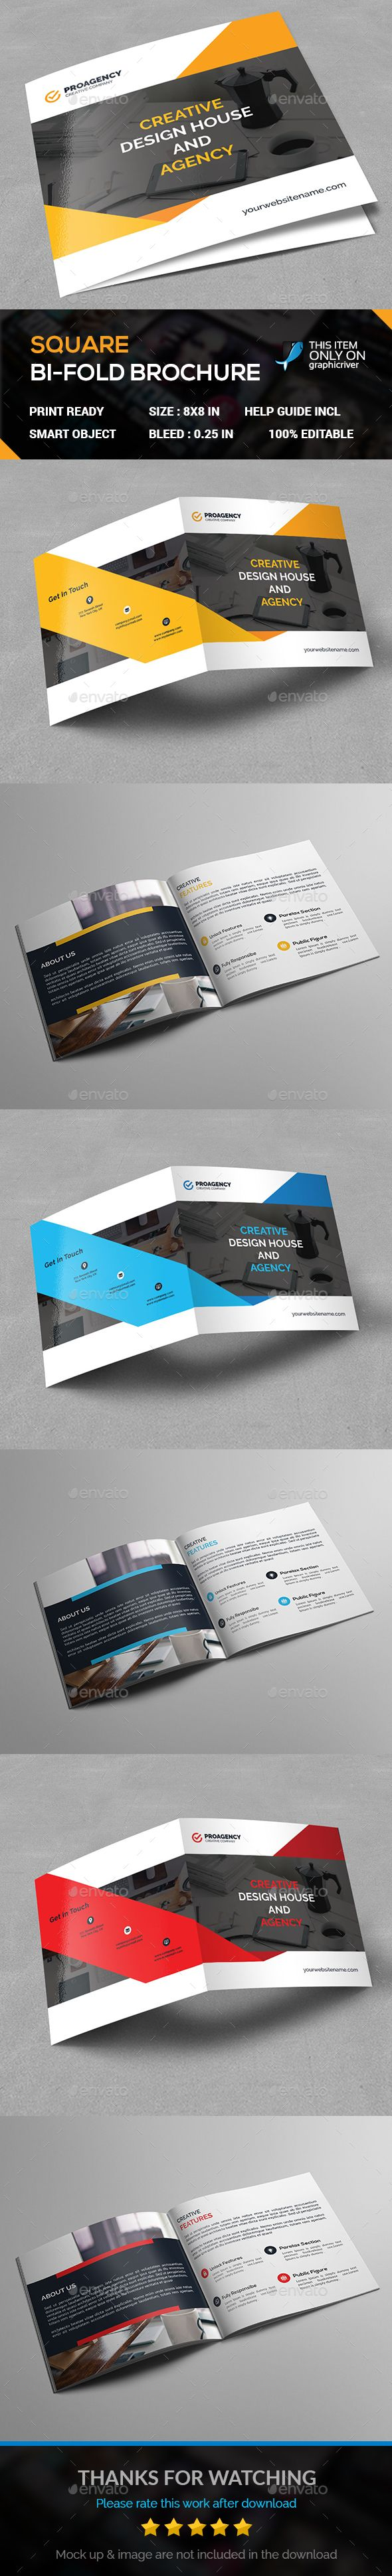 20 best bi fold brochure images on pinterest brochures bi fold square bi fold wajeb Image collections